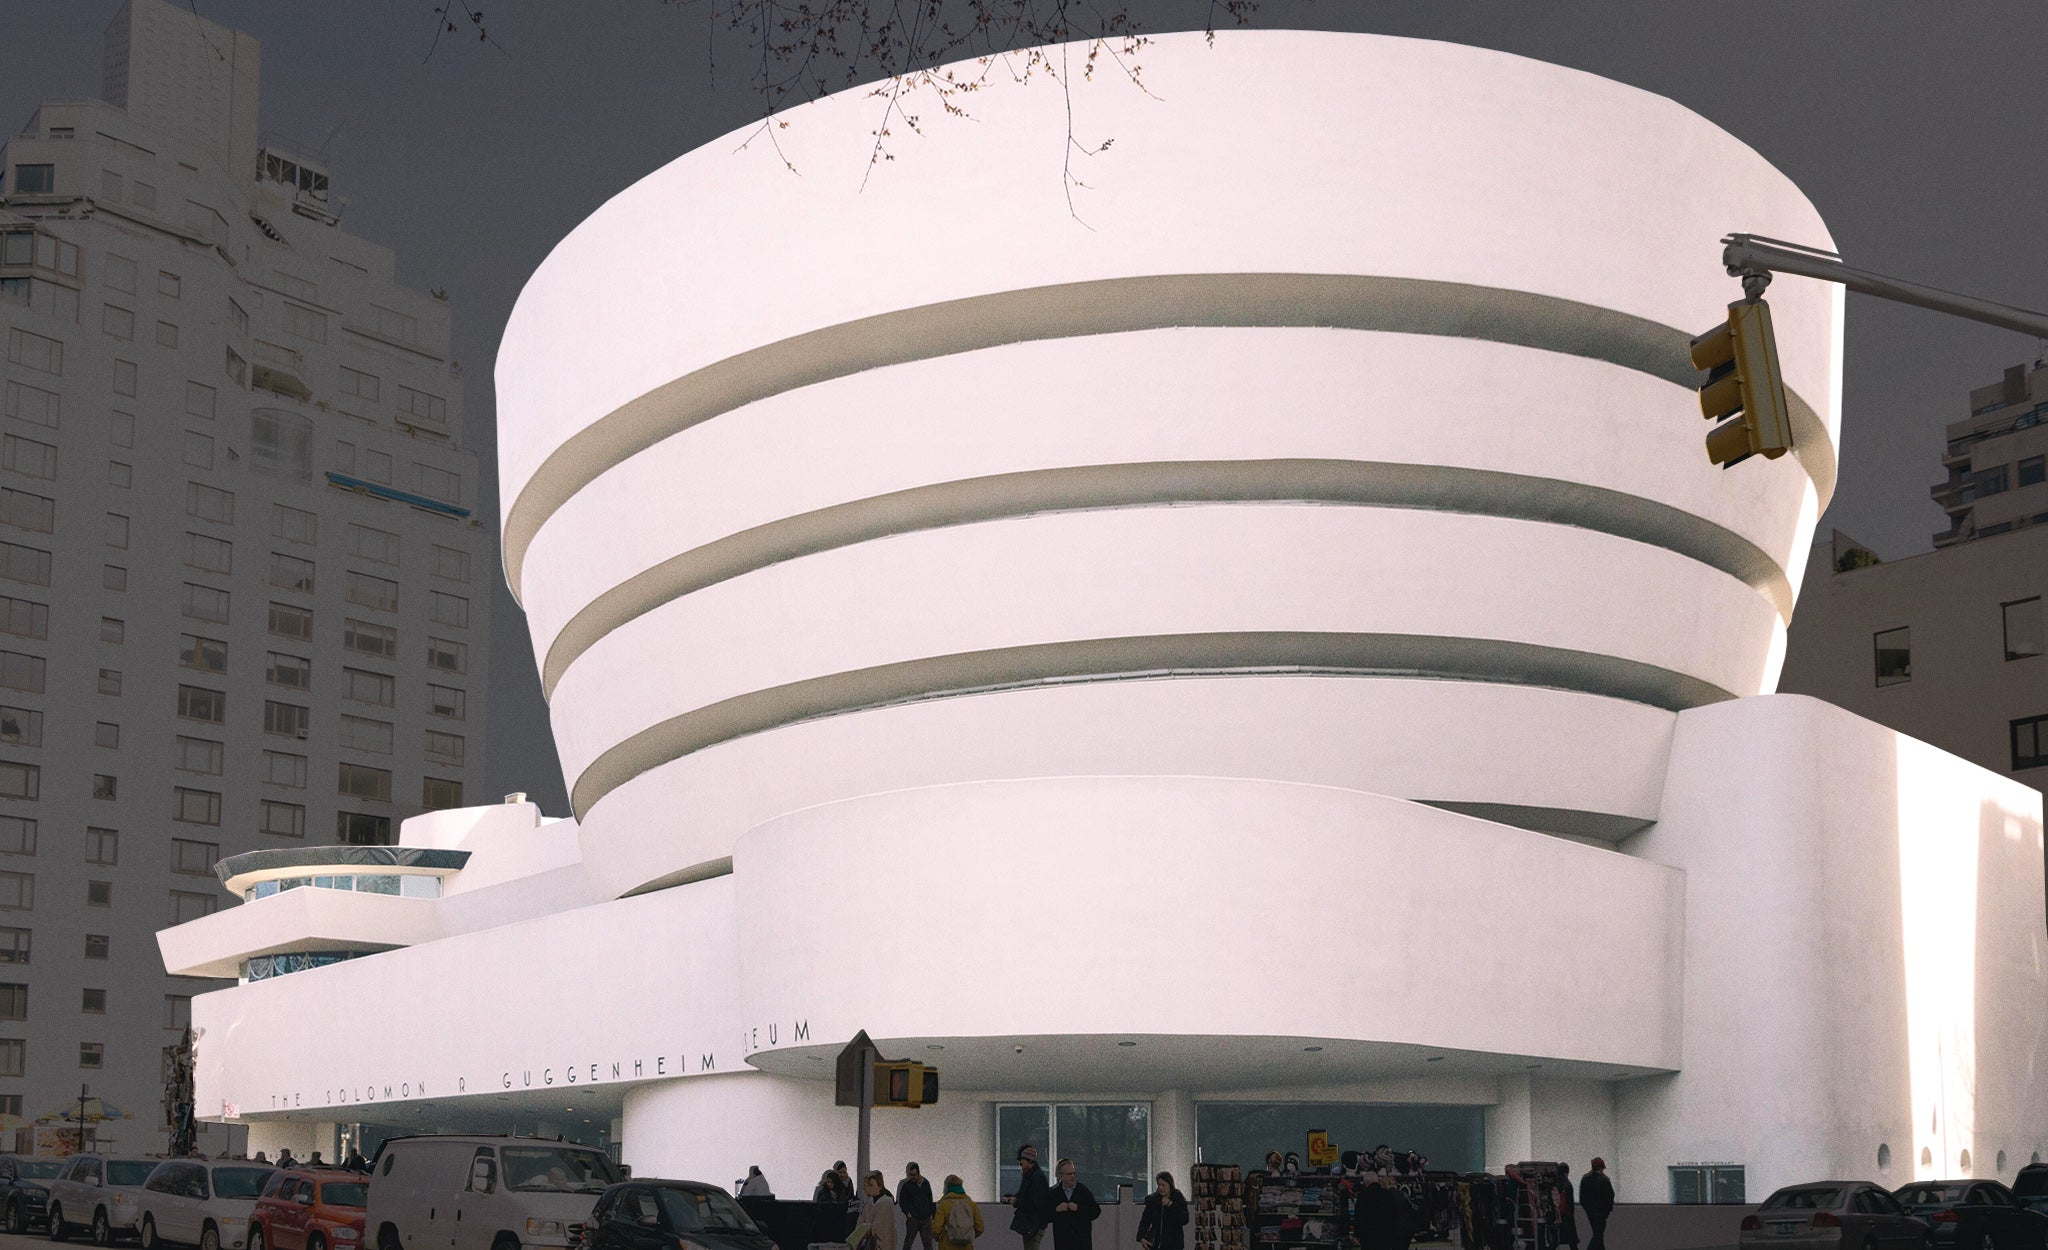 Frank Lloyd Wright's Guggenheim museum in New York